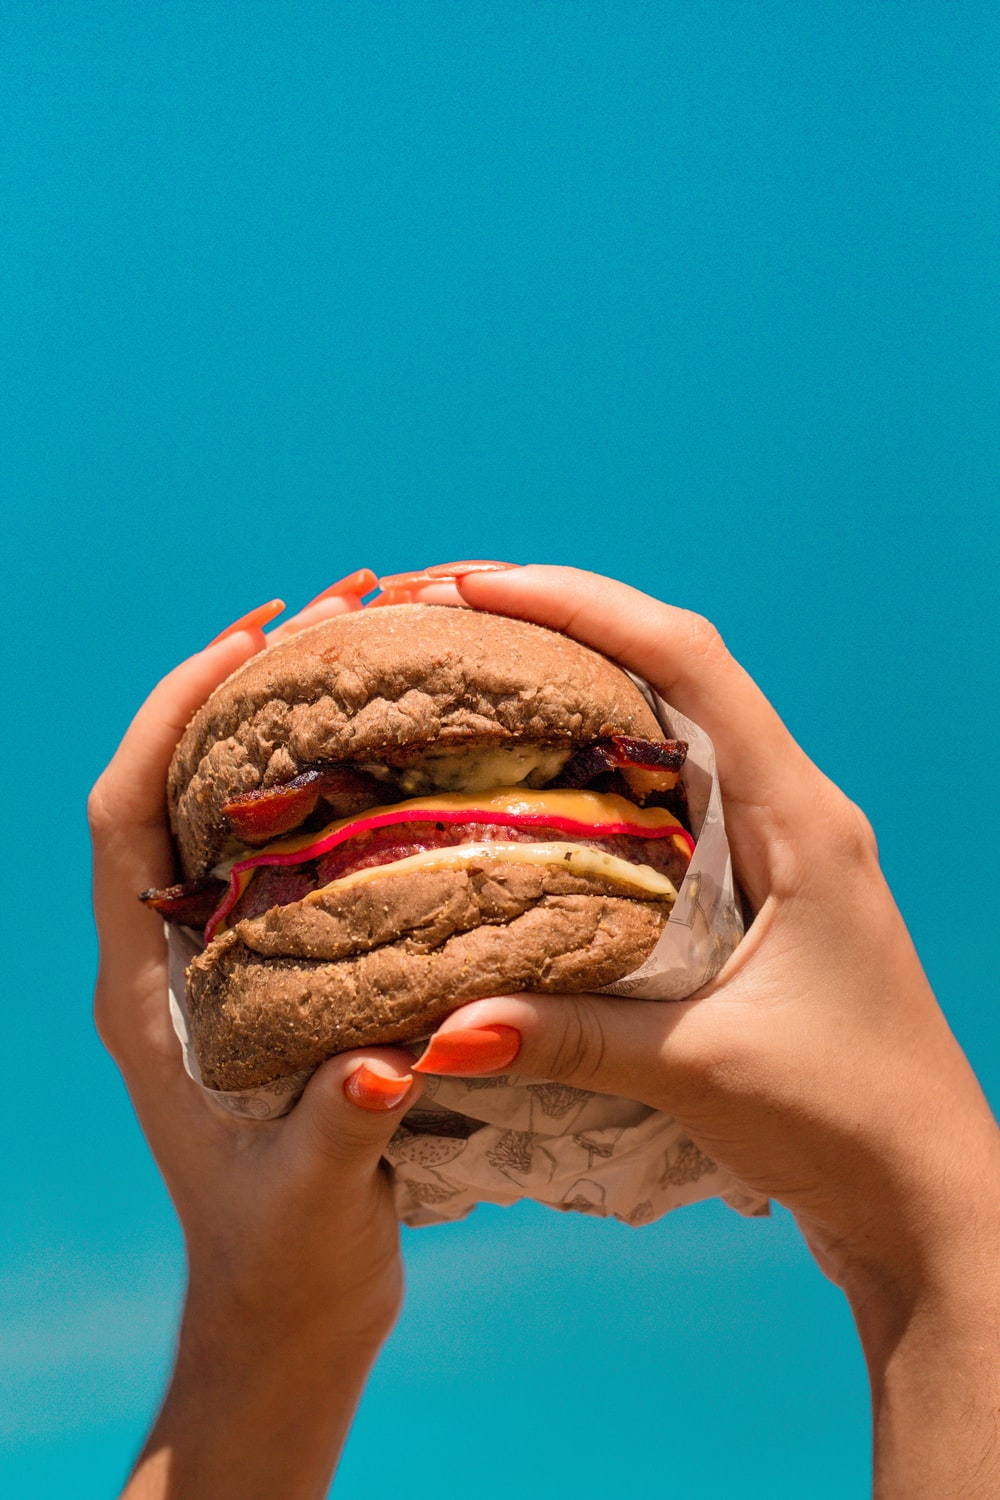 person holding burger with patty and lettuce